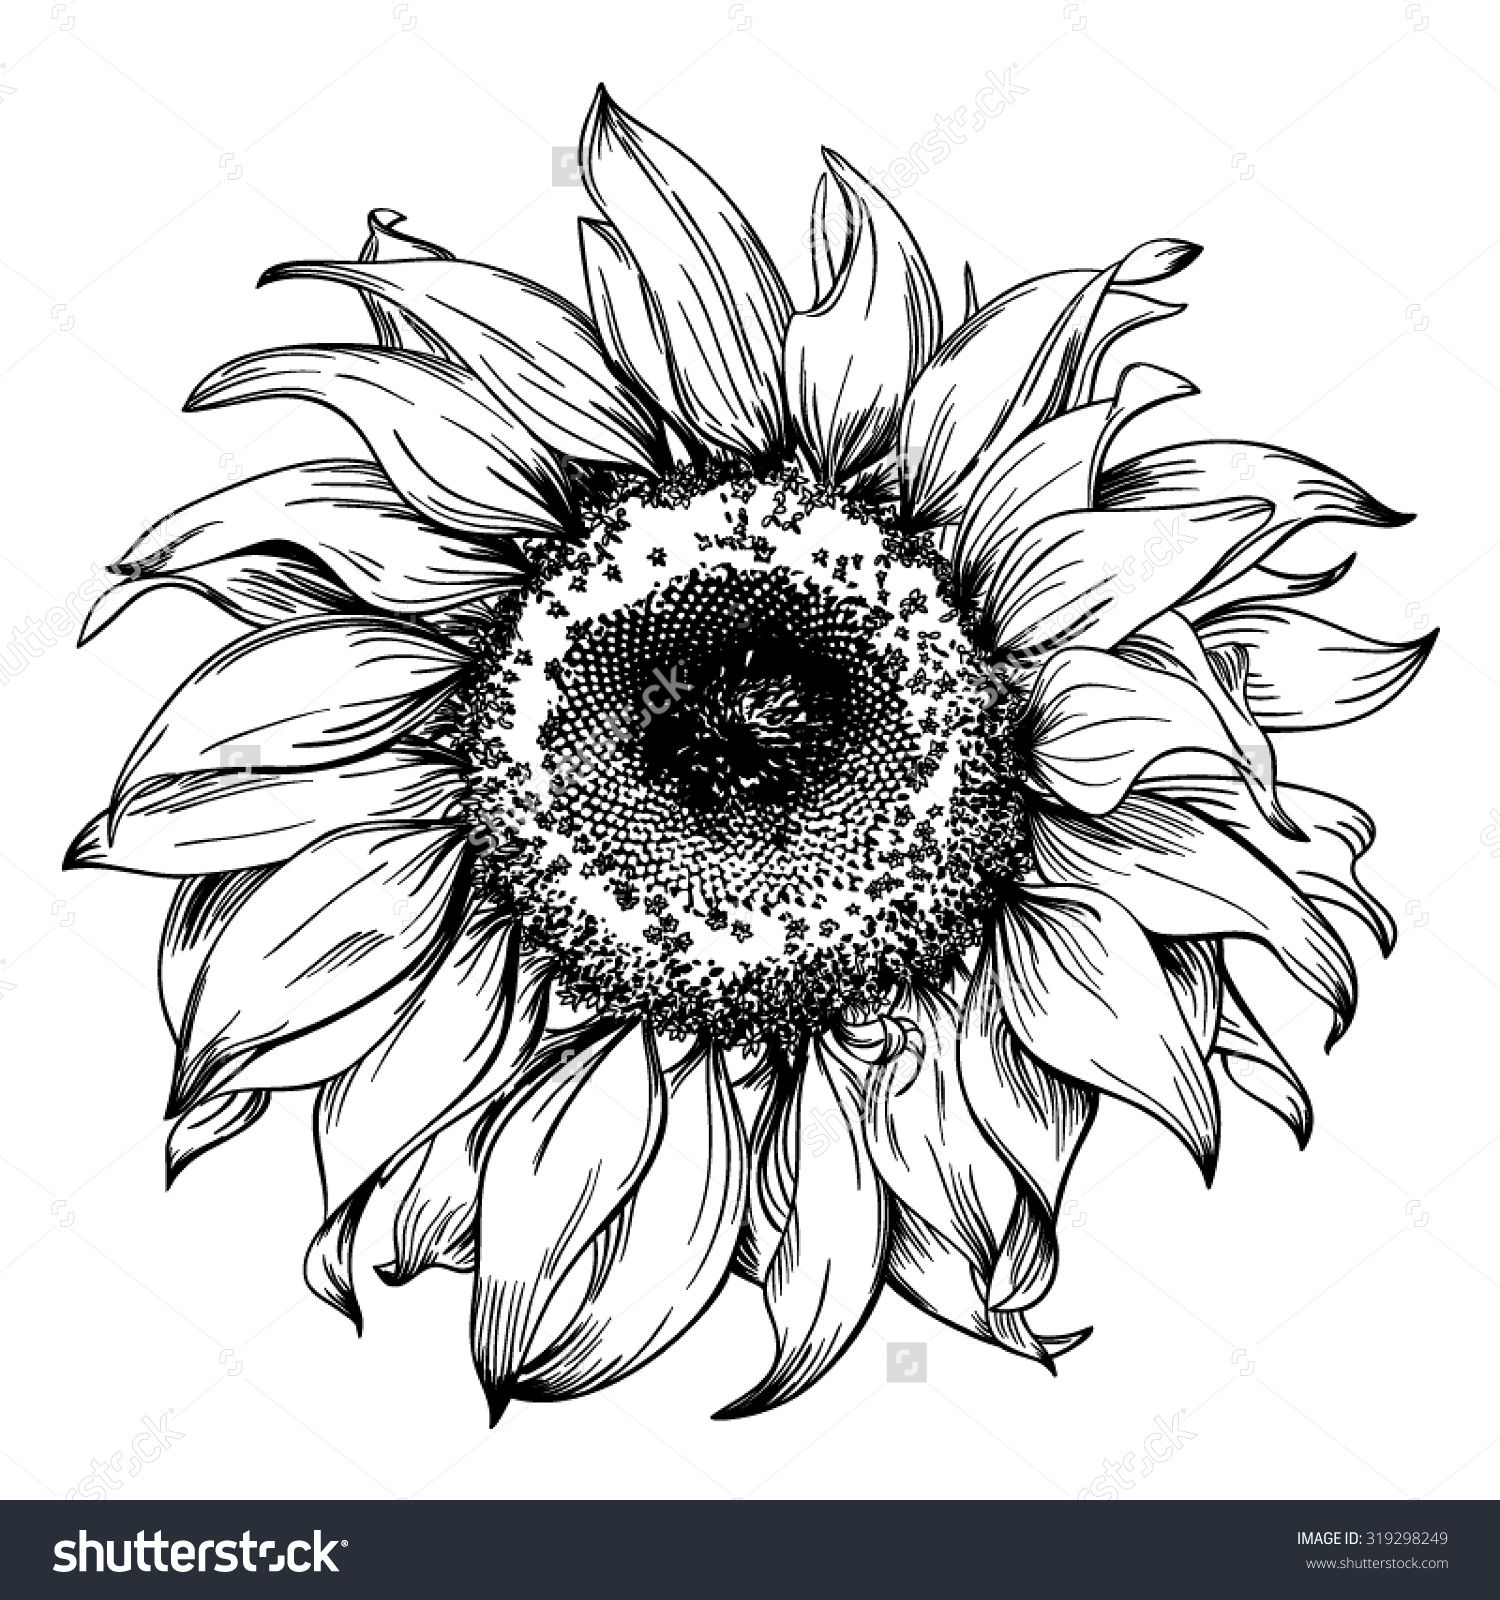 Drawing Lines With C : Hand drawn realistic vintage sunflower pen and ink drawing